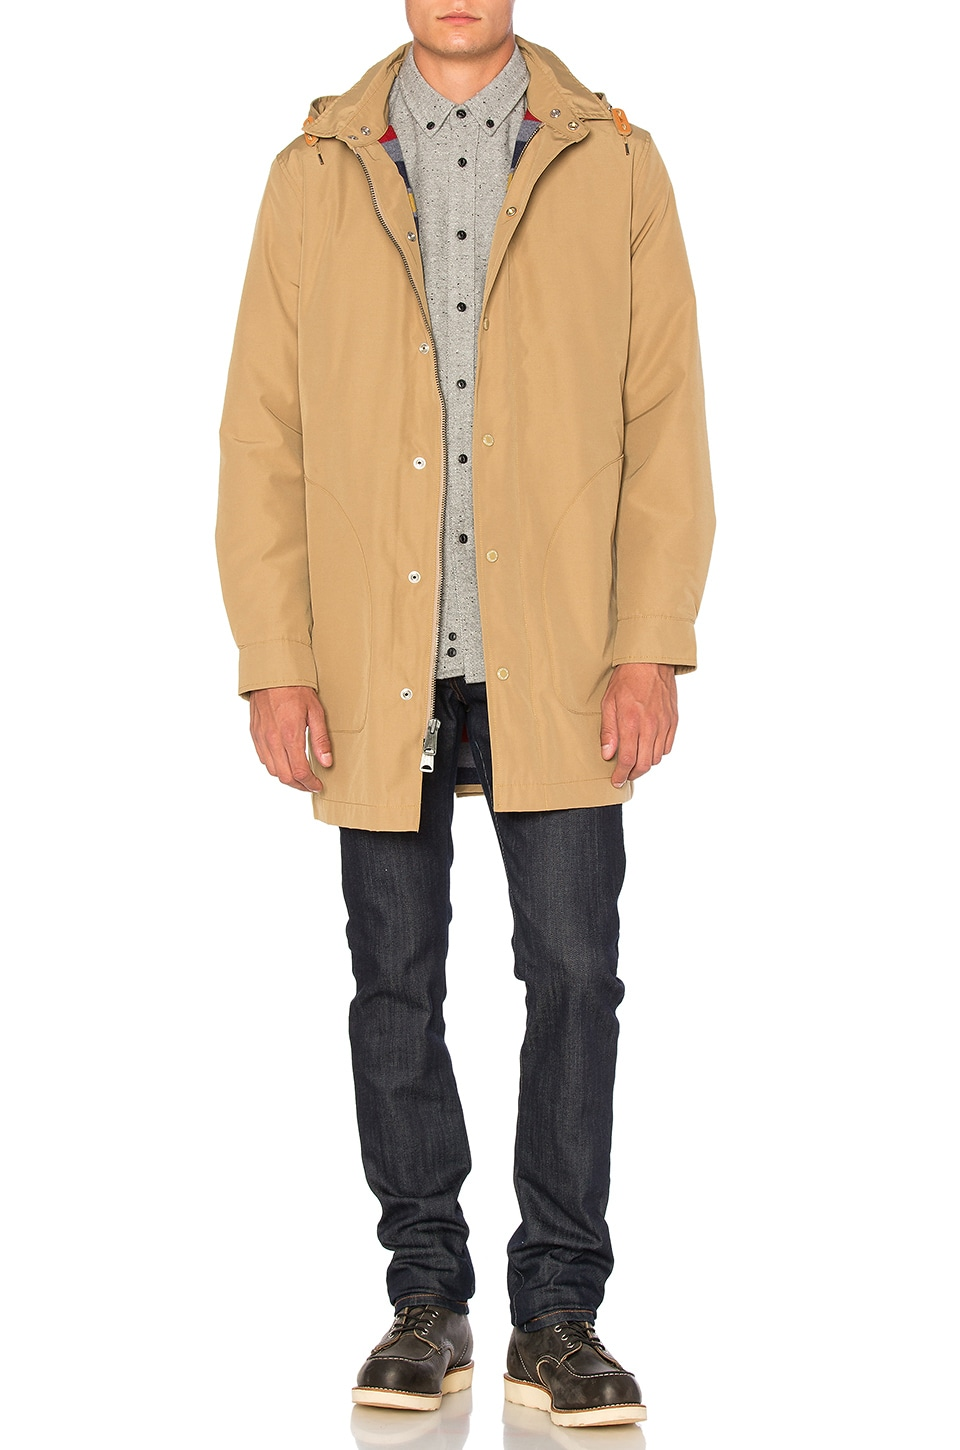 Penfield Ashford Insulated Rain Jacket in Tan | REVOLVE